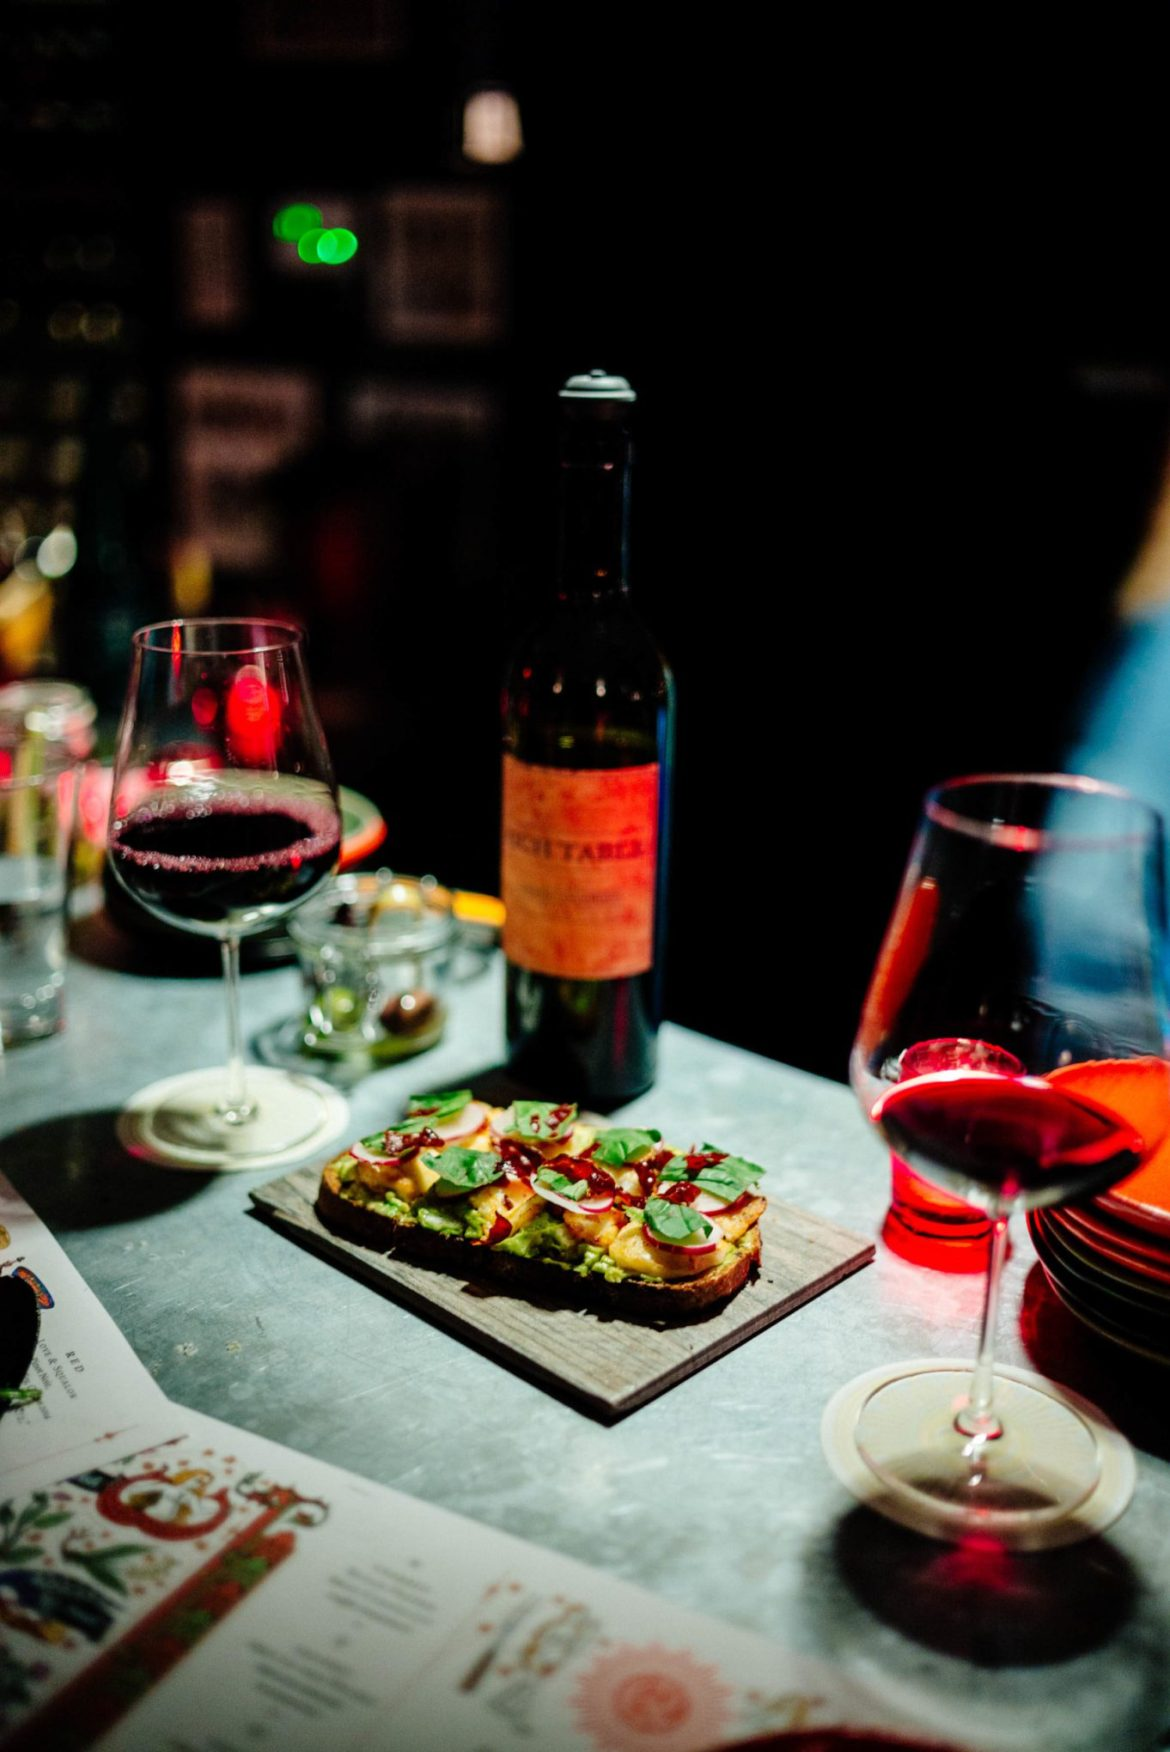 Visit this hidden wine bar in Palm Springs Counter Reformation - the bread is freshly baked! The Taste Edit recommends trying vocado, holoumi, and rye tartine